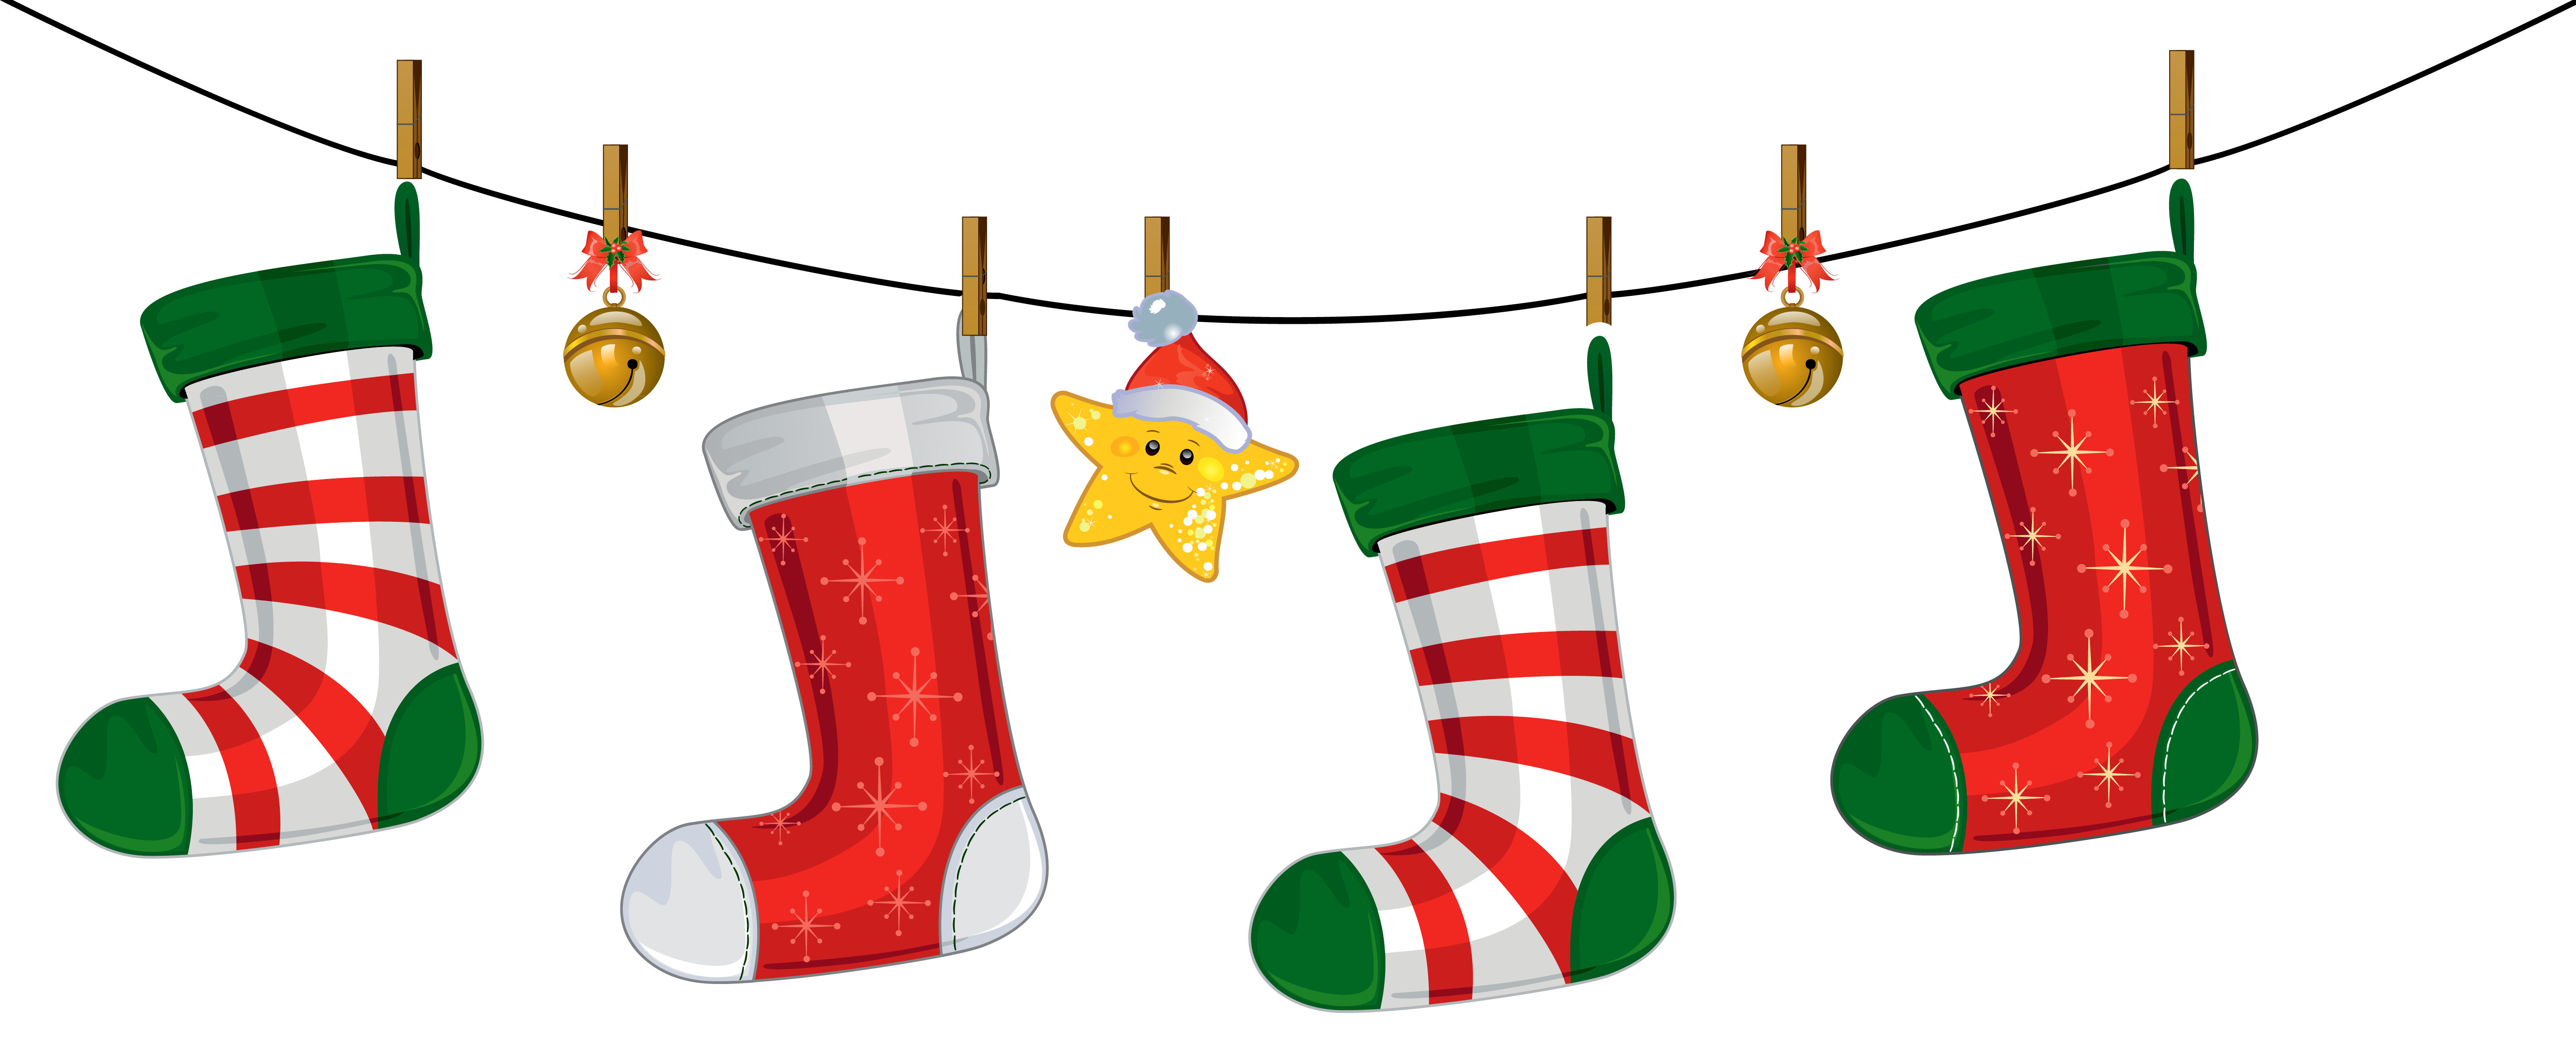 Transparent Christmas Stockings Decorati-Transparent Christmas Stockings Decoration Png Clipart Japoland-3